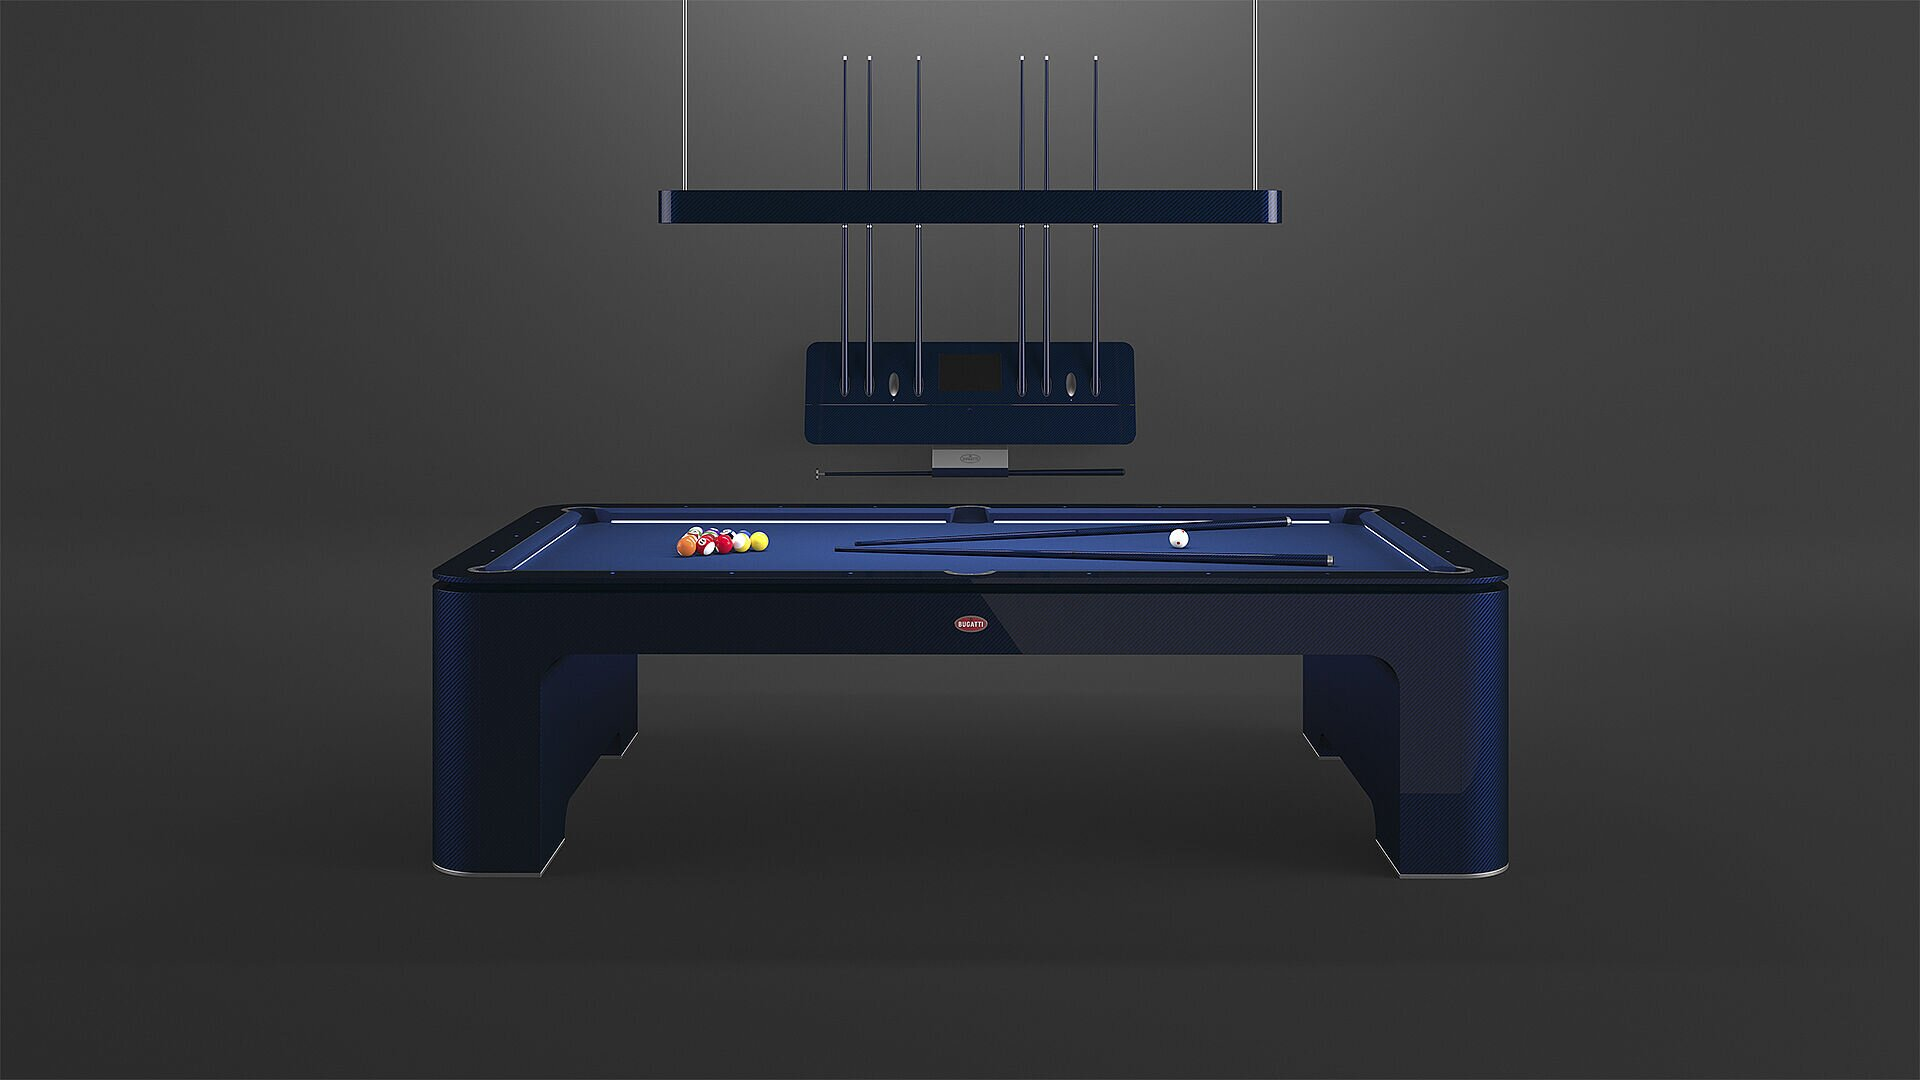 [Translate to Deutsch:] The Bugatti Pool Table, limited to 30 pieces, is available to purchase for €250.000, including the accessories.